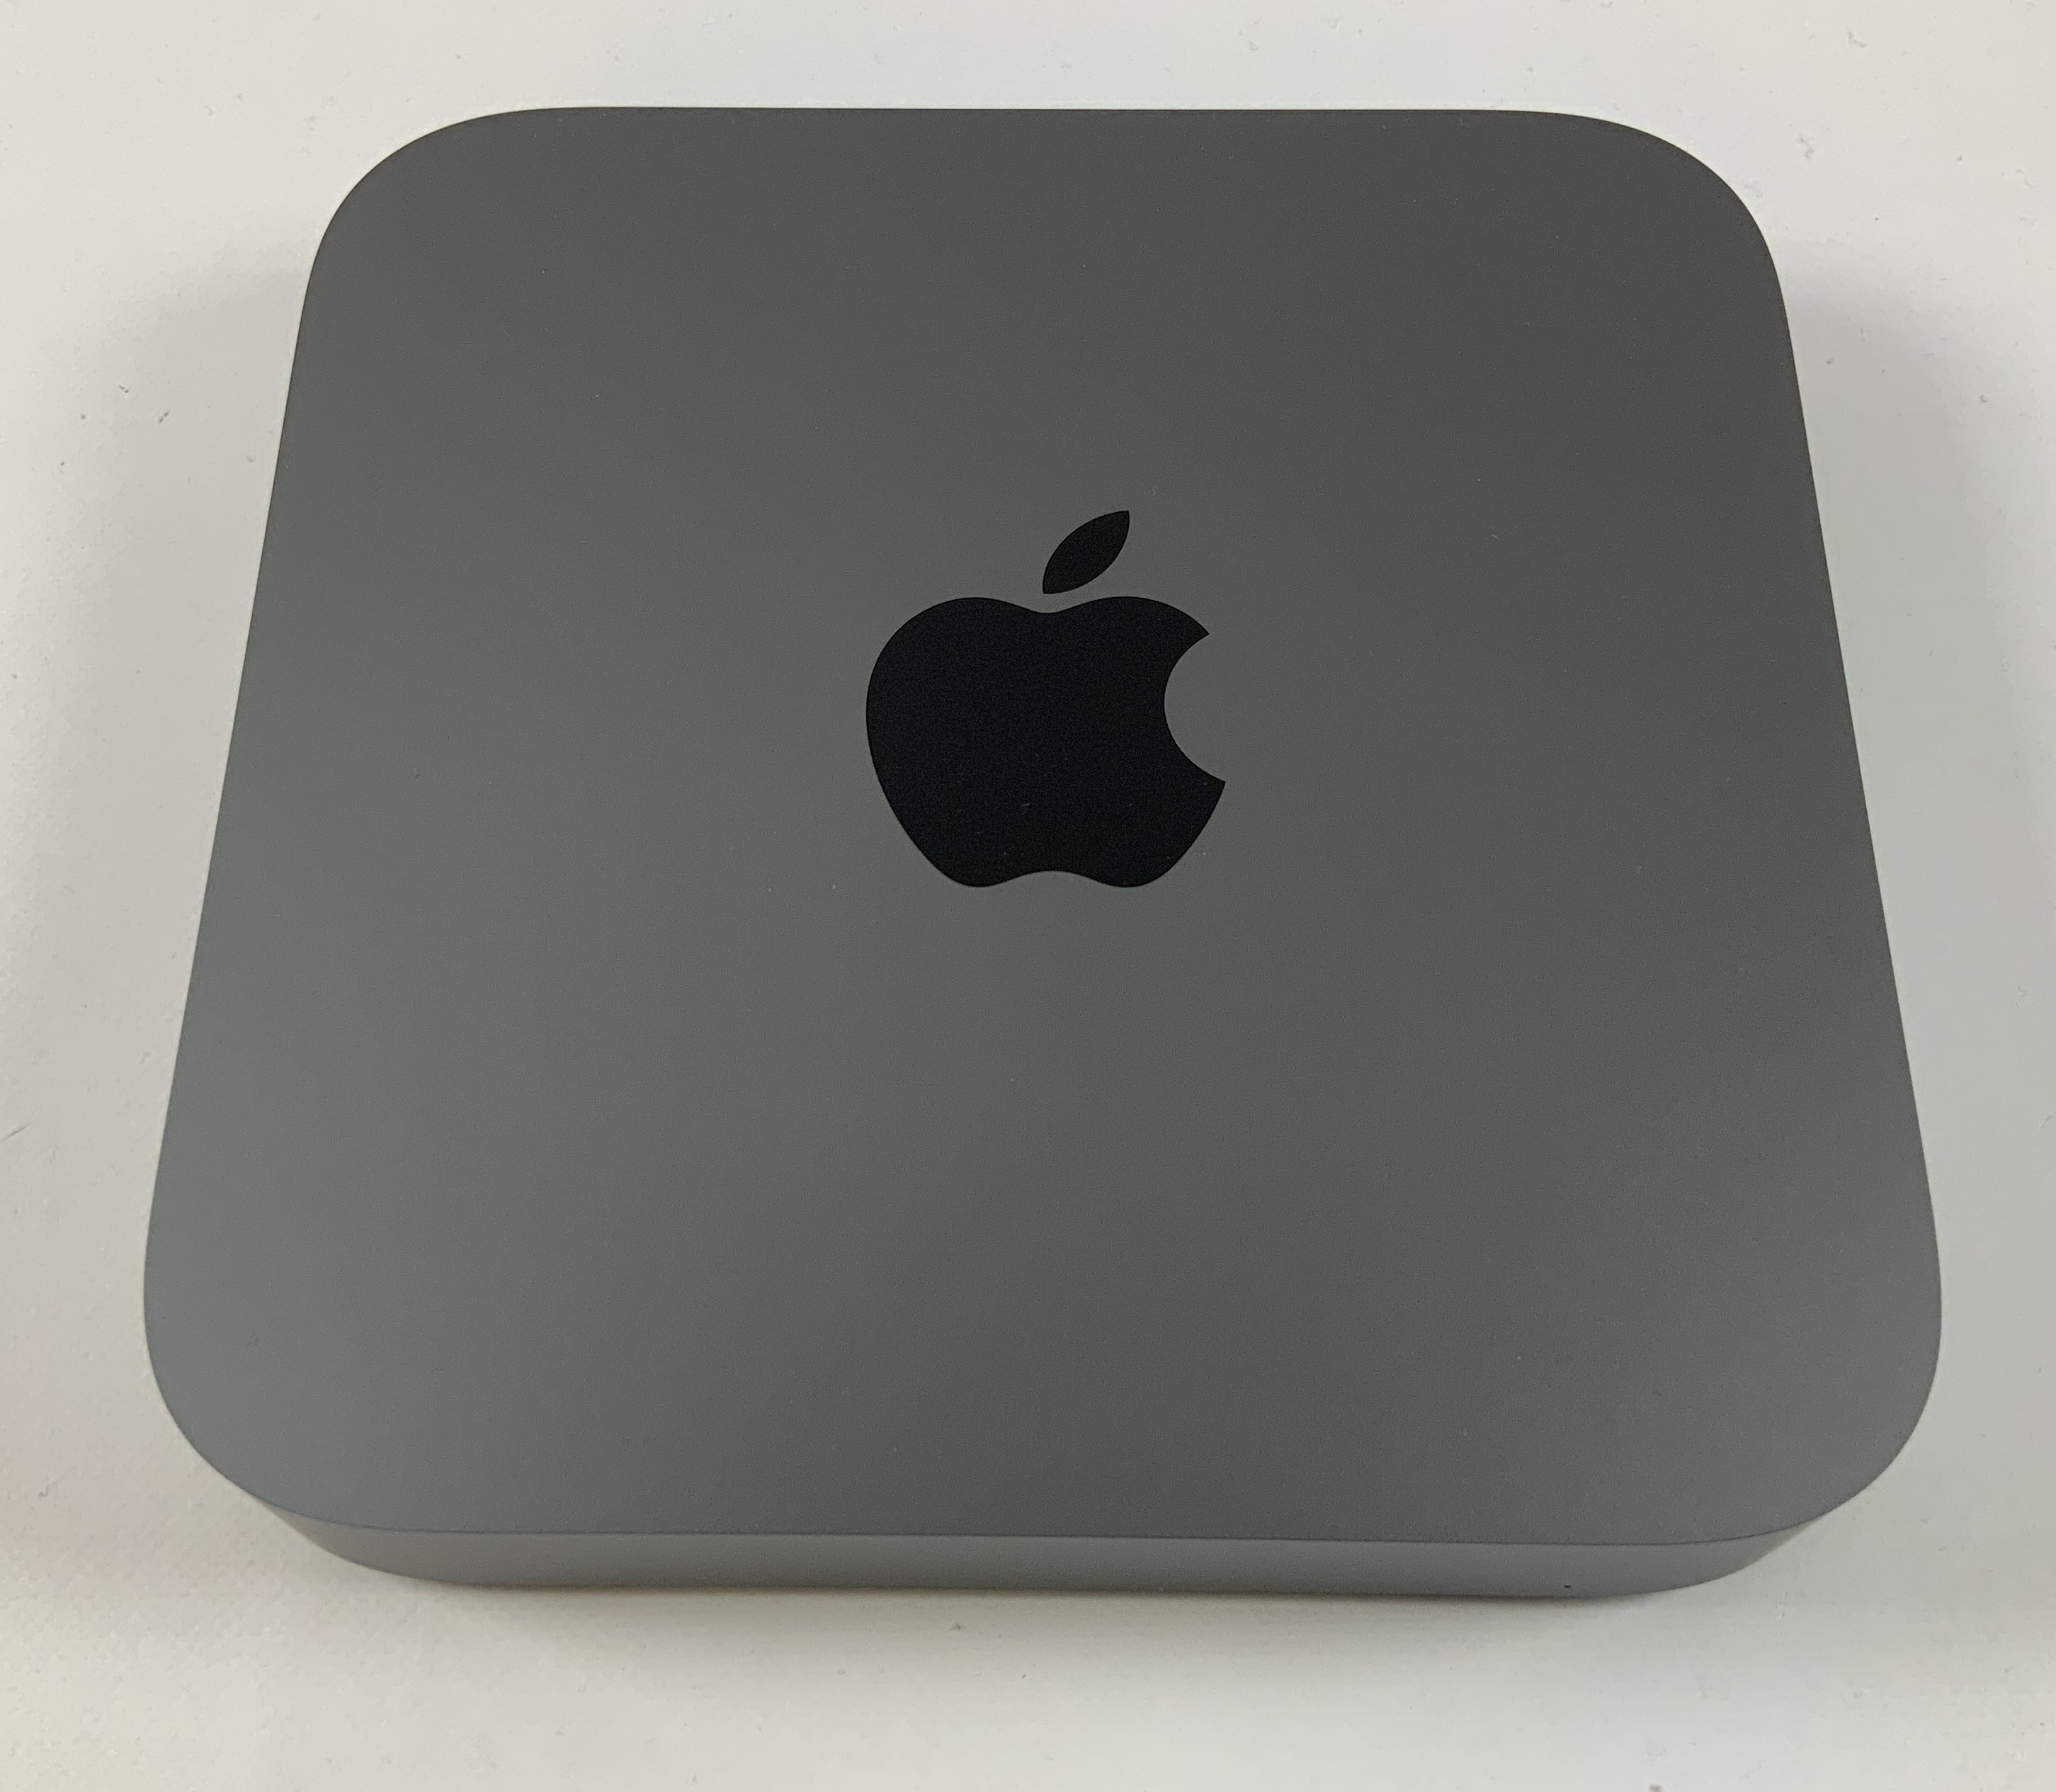 Mac Mini Late 2018 (Intel Quad-Core i3 3.6 GHz 16 GB RAM 512 GB SSD), Intel Quad-Core i3 3.6 GHz, 16 GB RAM, 512 GB SSD, image 1